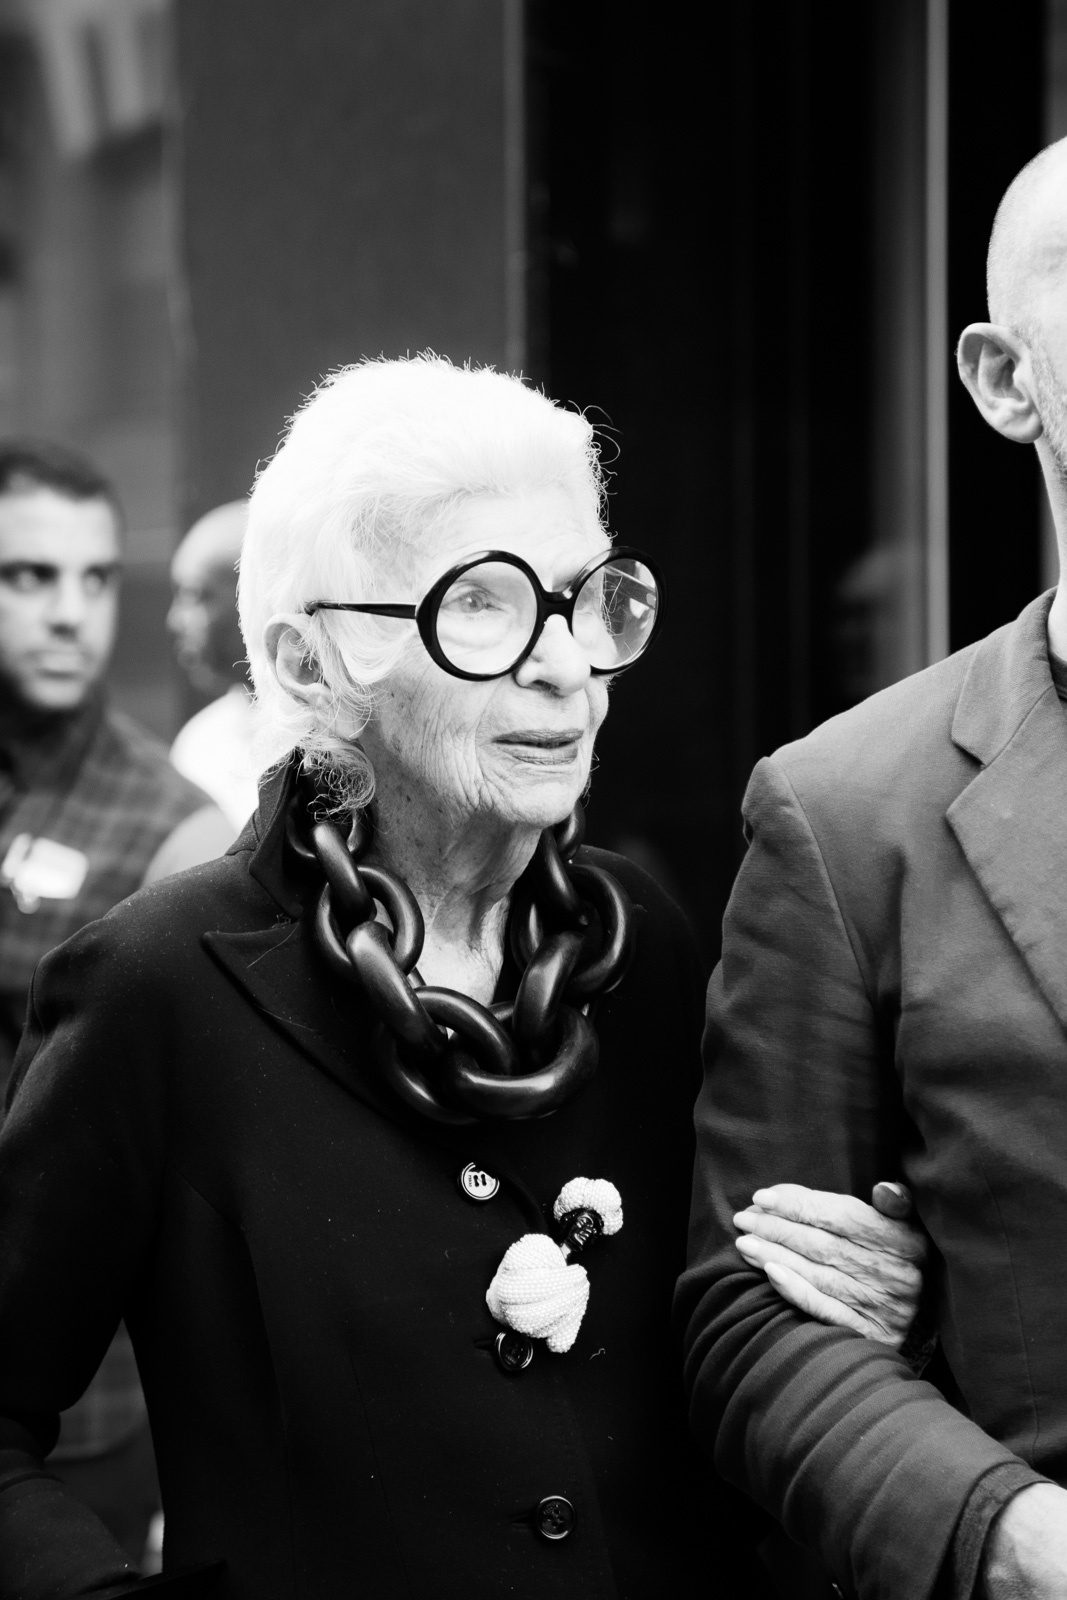 Guest Iris Apfel after the Thom Browne show as part of the New York Fashion Week Womenswear Spring/Summer 2016 at Skylight Modern on September 14, 2015 in New York City, USA.